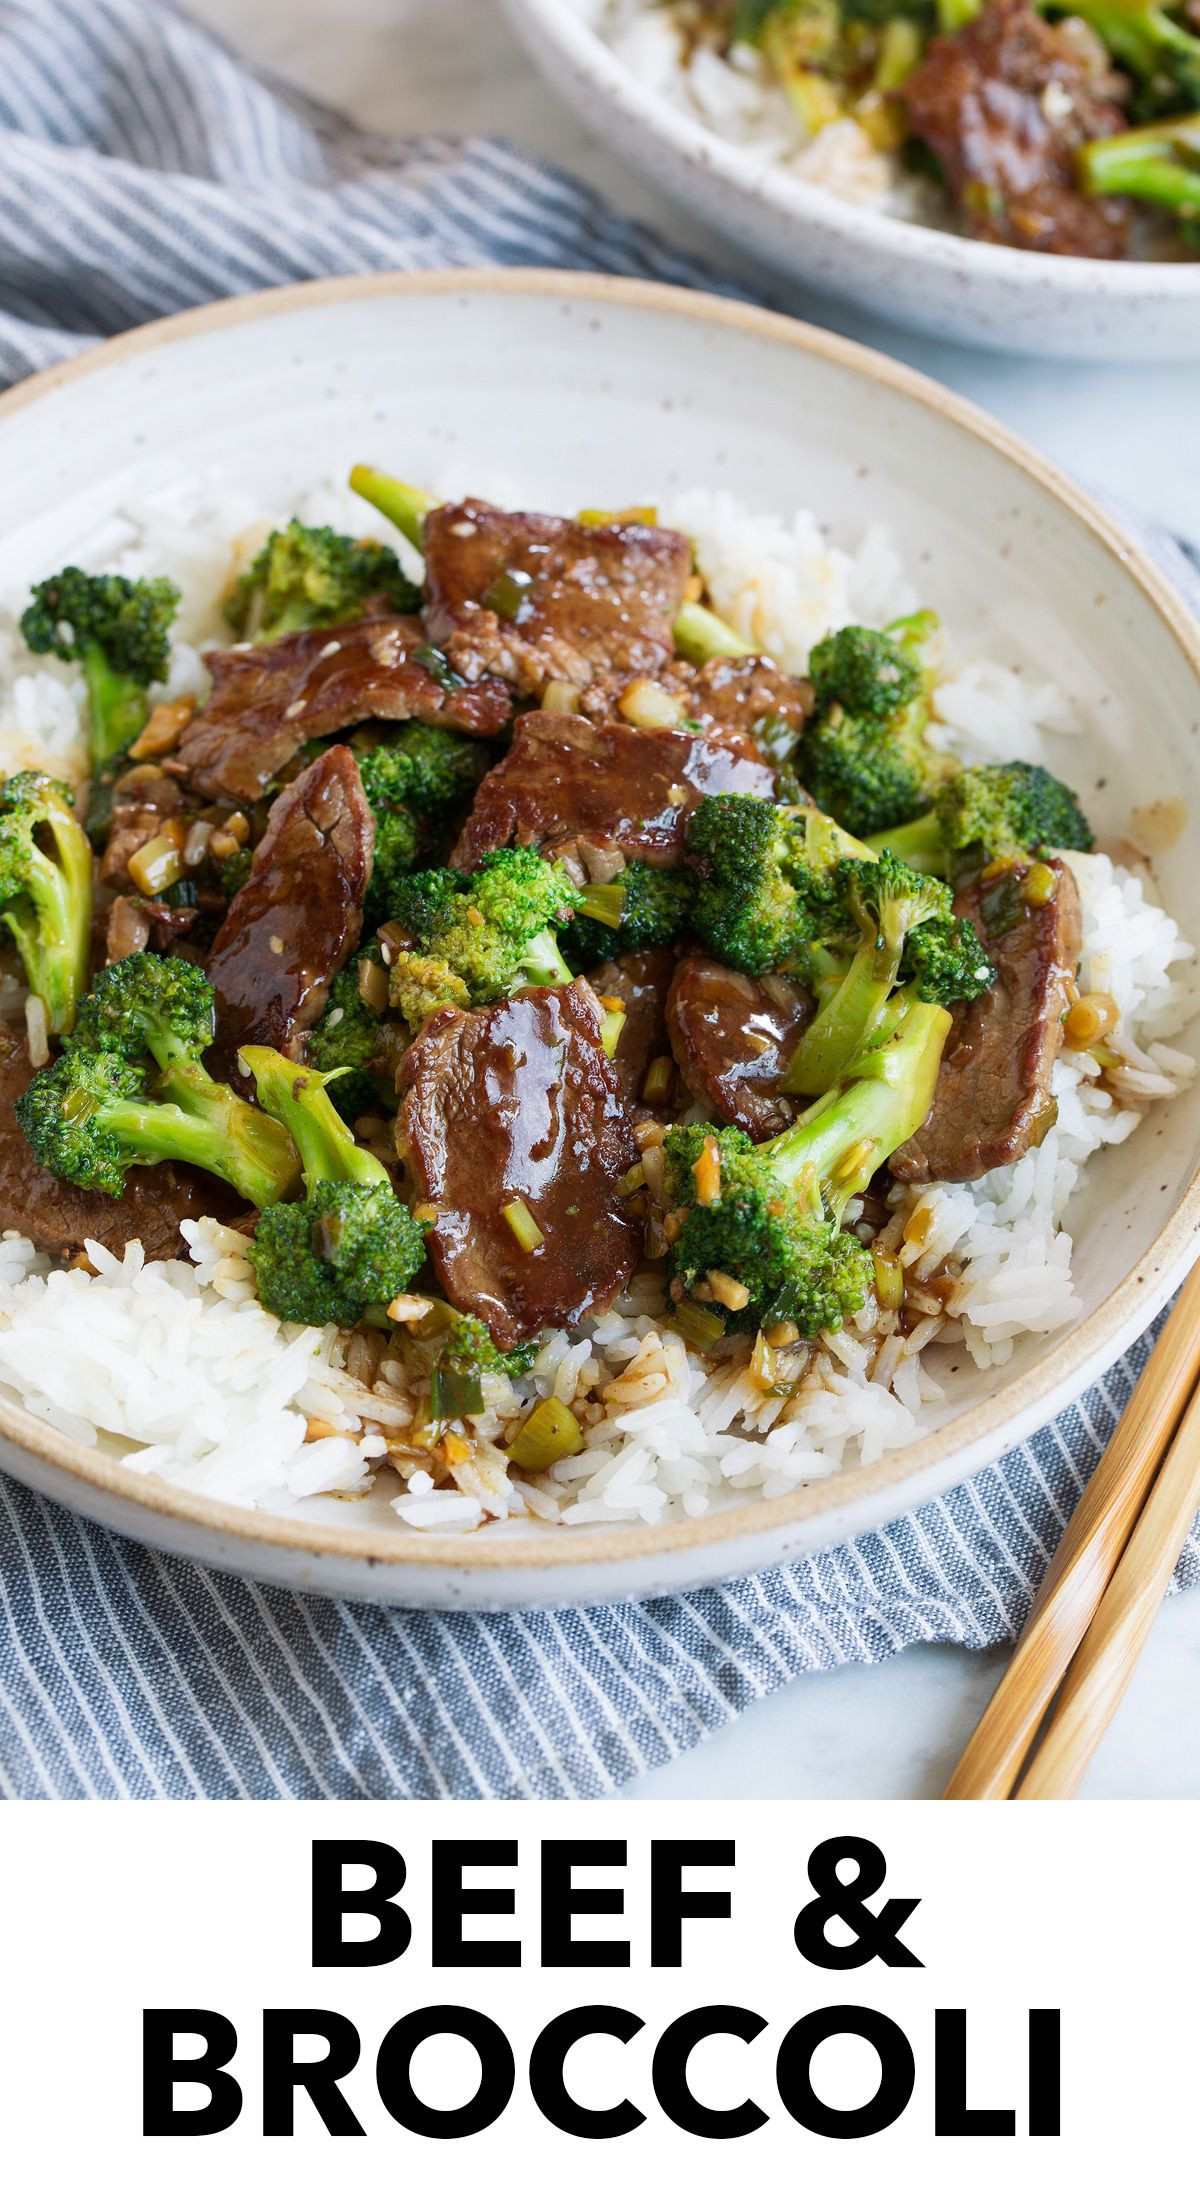 Beef and Broccoli recipe - this hearty Asian dish is made with tender strips of hearty steak and nutritious, fresh steamed broccoli, then it's finished with delicious sweet and savory sauce. It's a recipe everyone can agree on and one everyone will look forward to after a long day! #beef #broccoli #chinese #recipe #beefandbroccoli